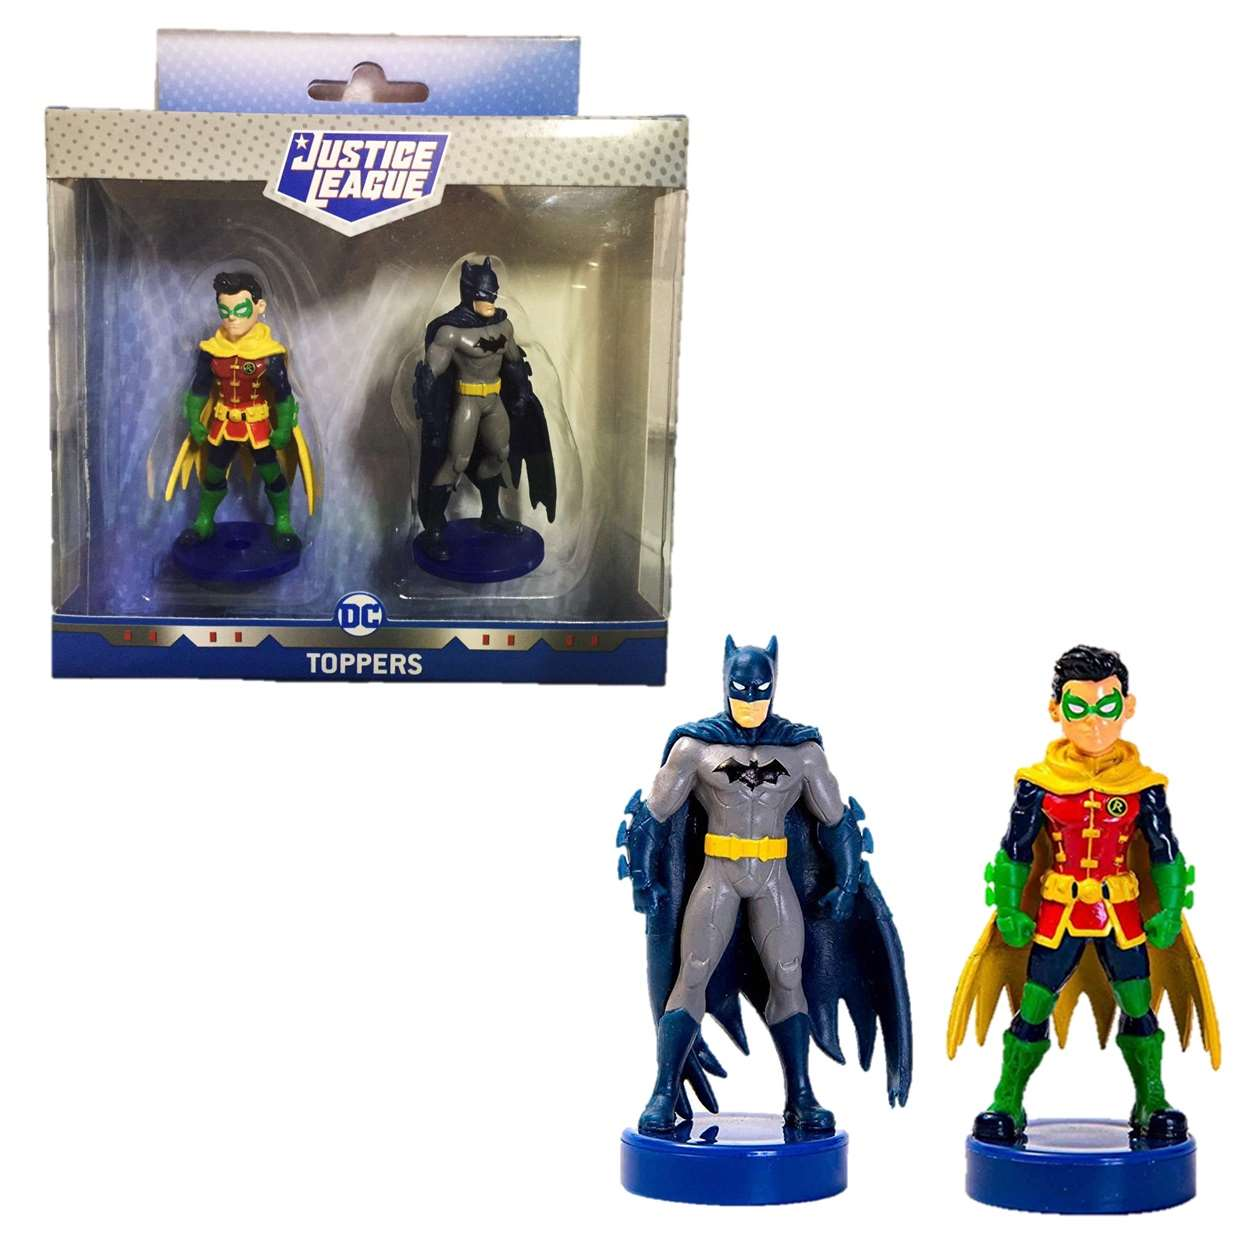 Pack 2 Figurillas Batman And Robin Toppers Justice League